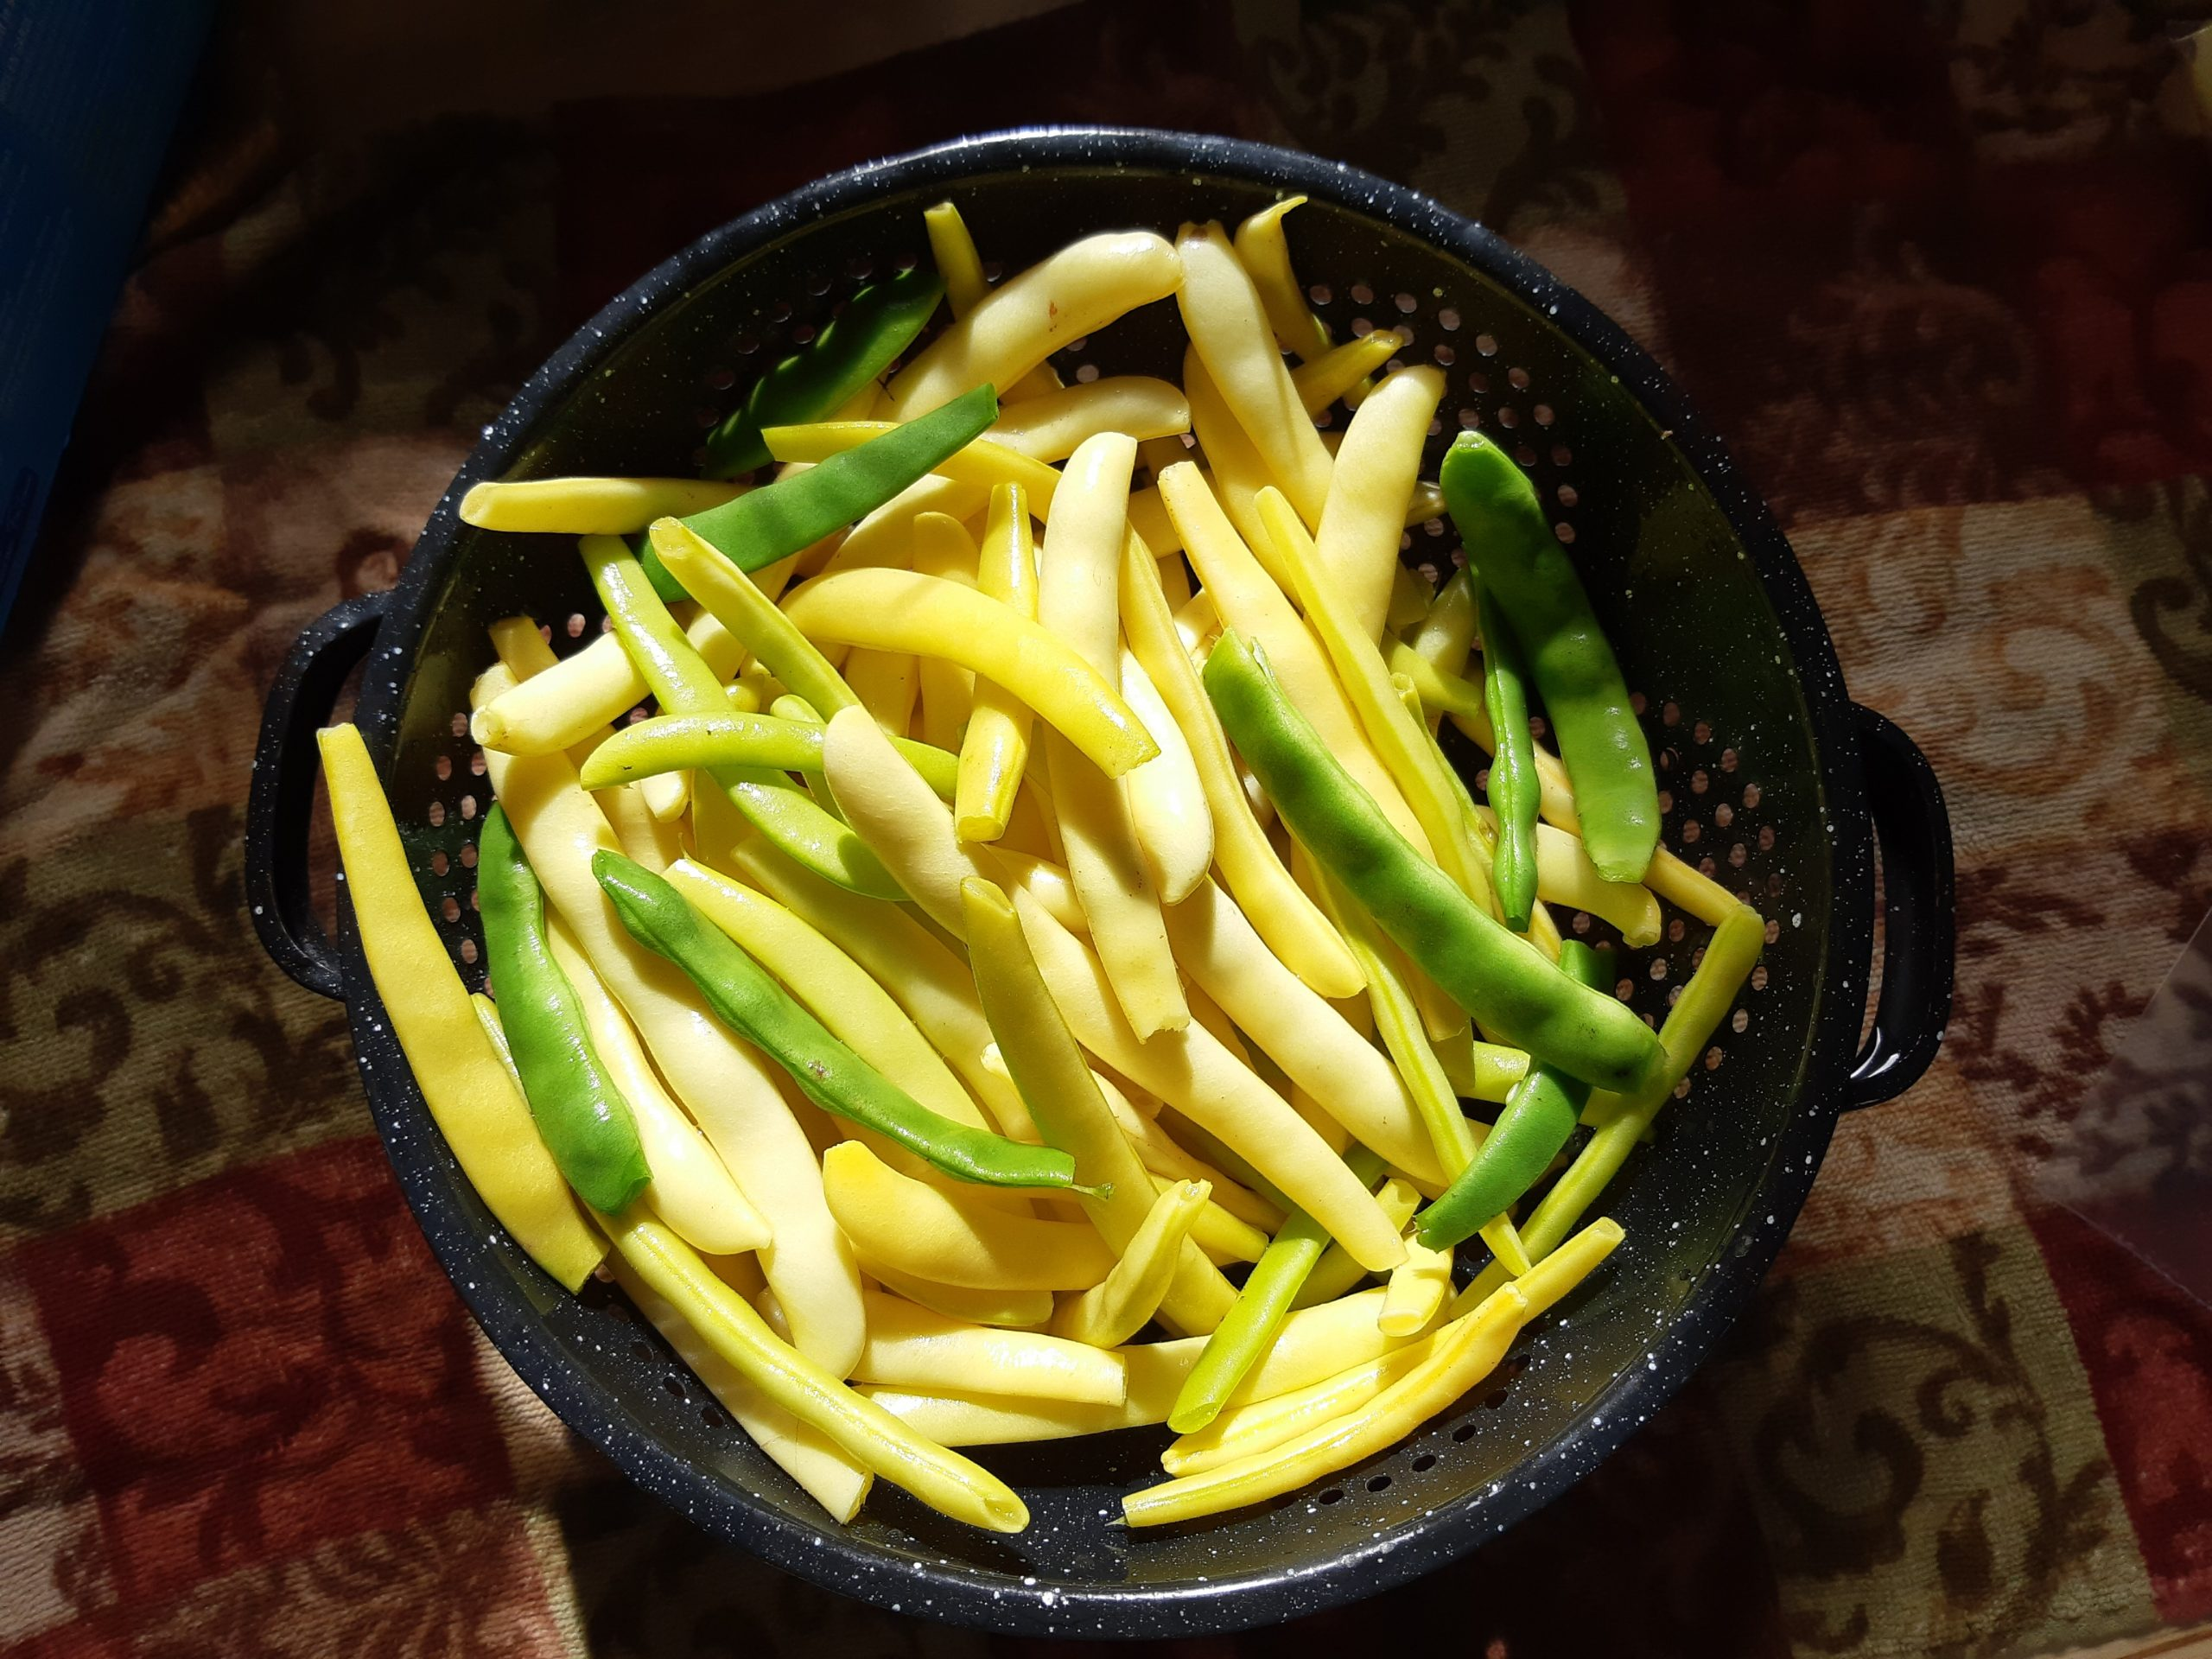 Freezing Snap Beans the Easy Way